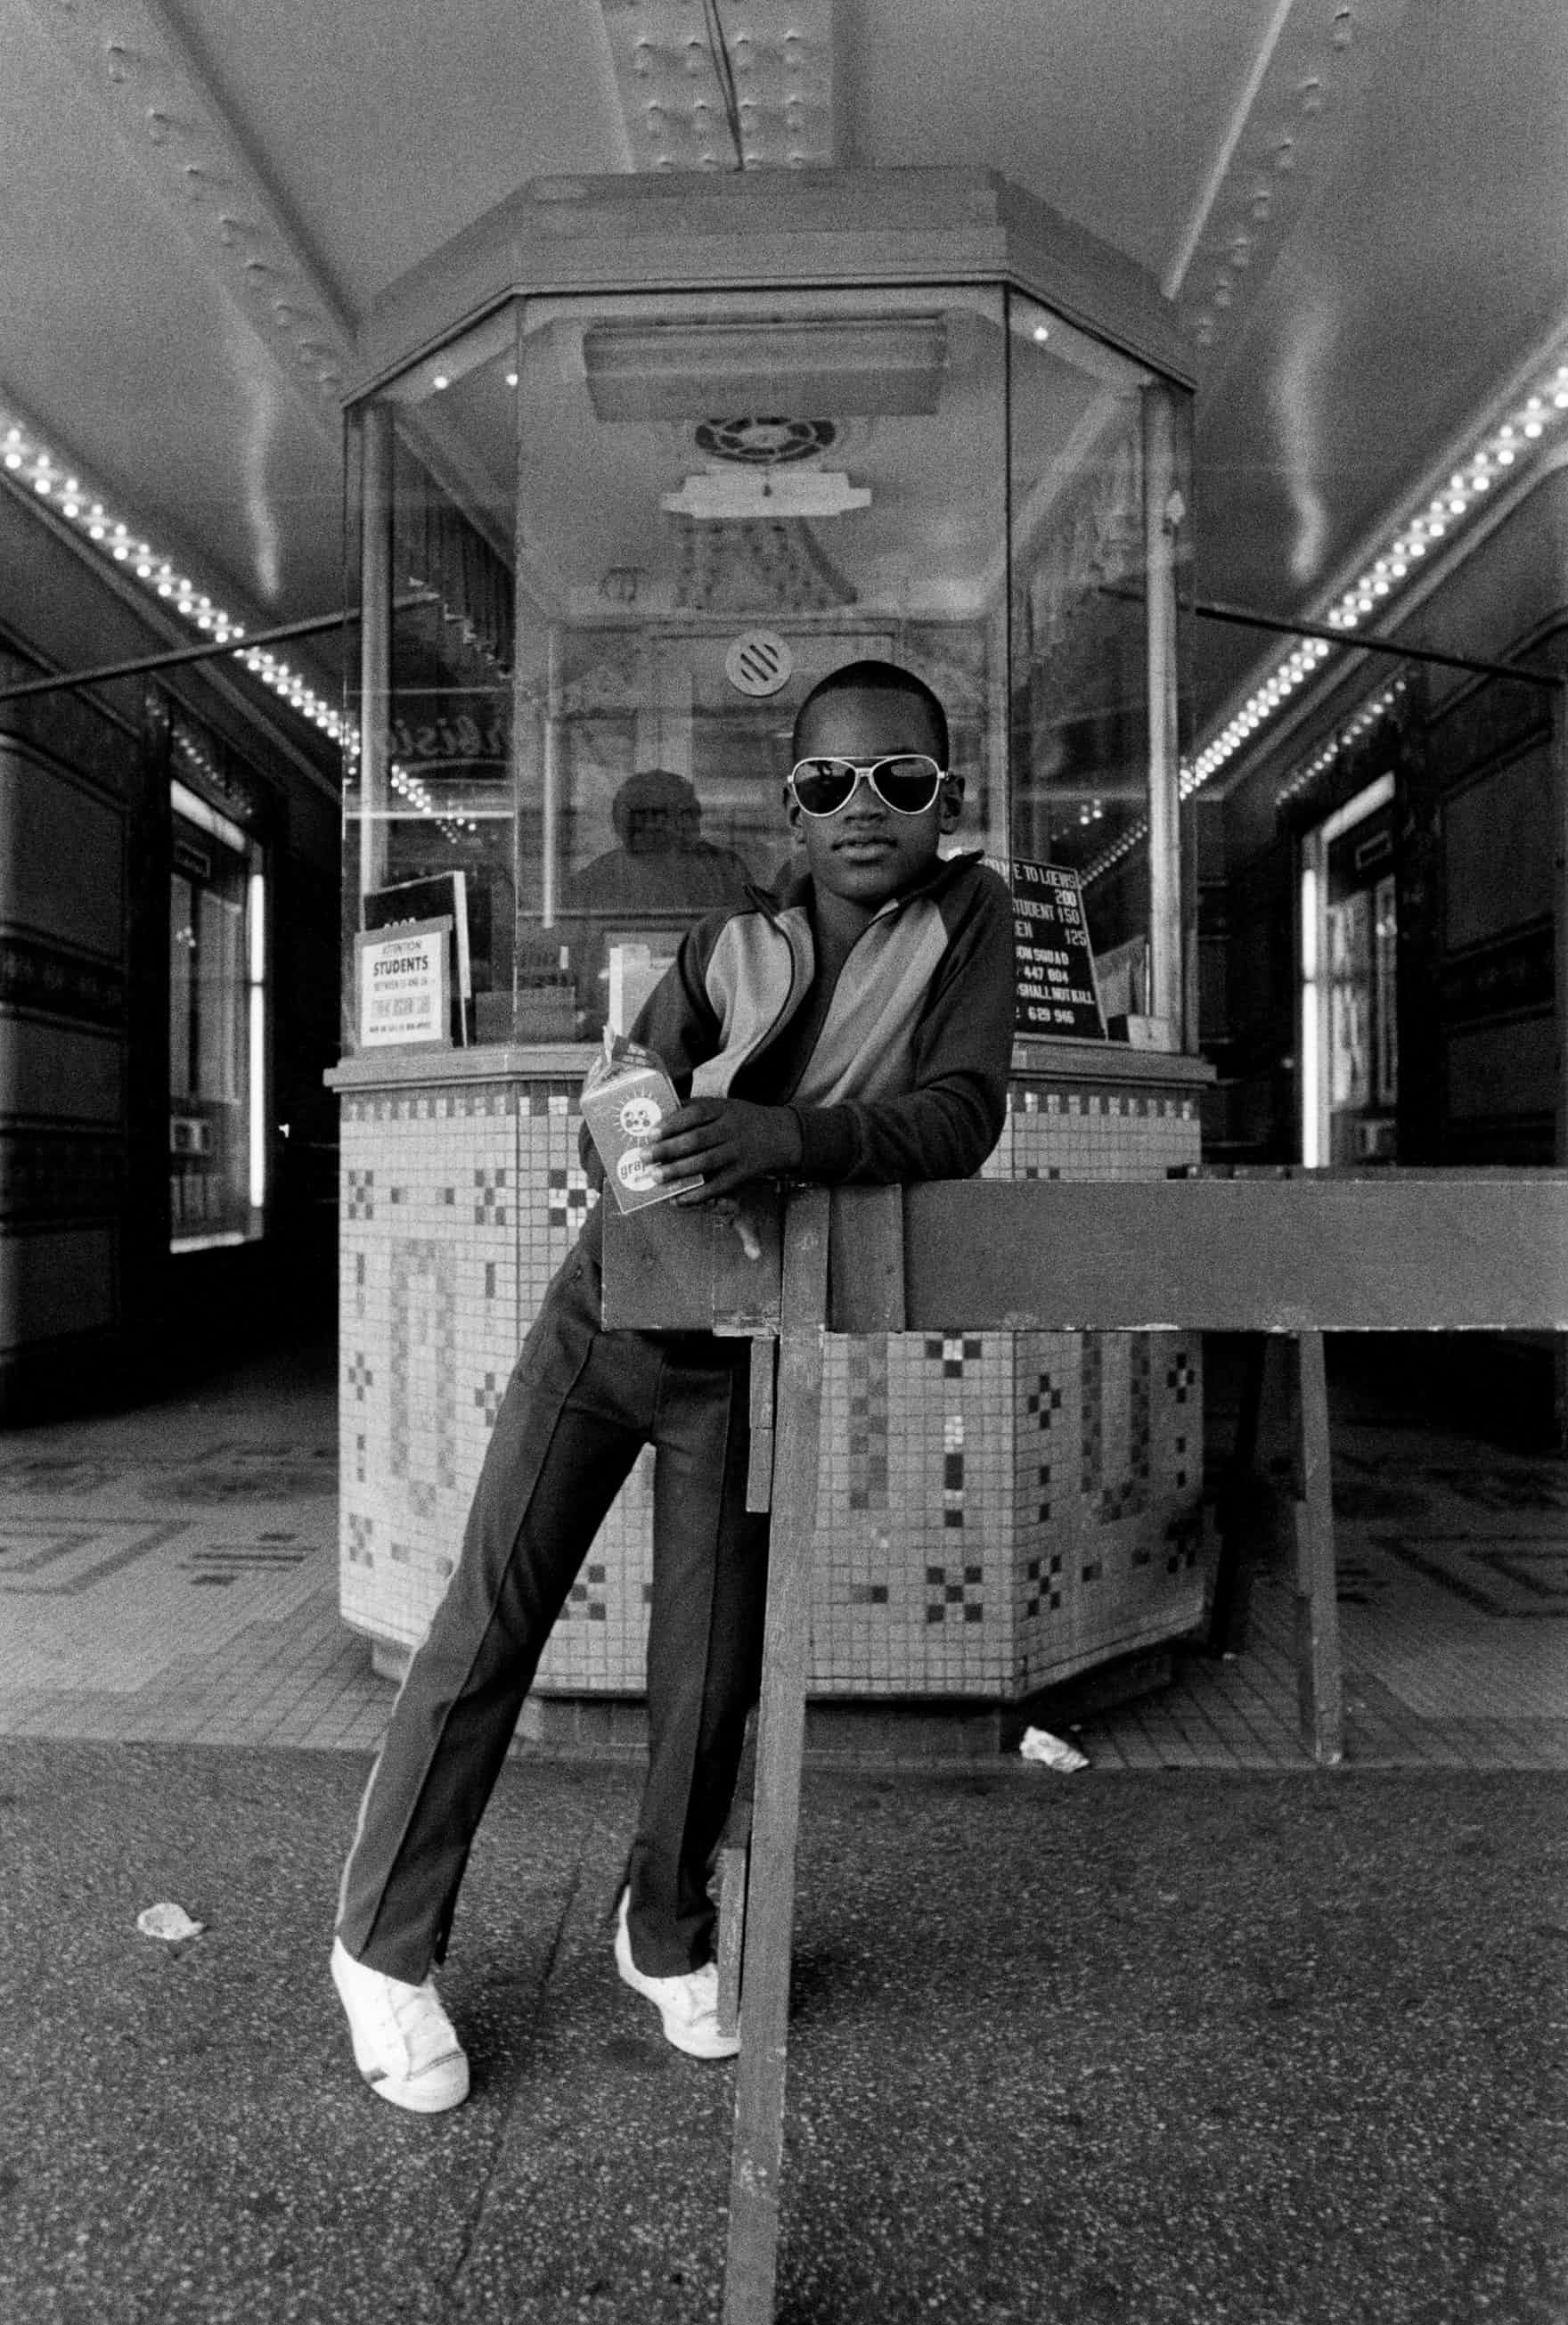 A boy in front of the Loew's 125th Street movie theatre, 1976 / Photograph: Dawoud Bey/Courtesy of S